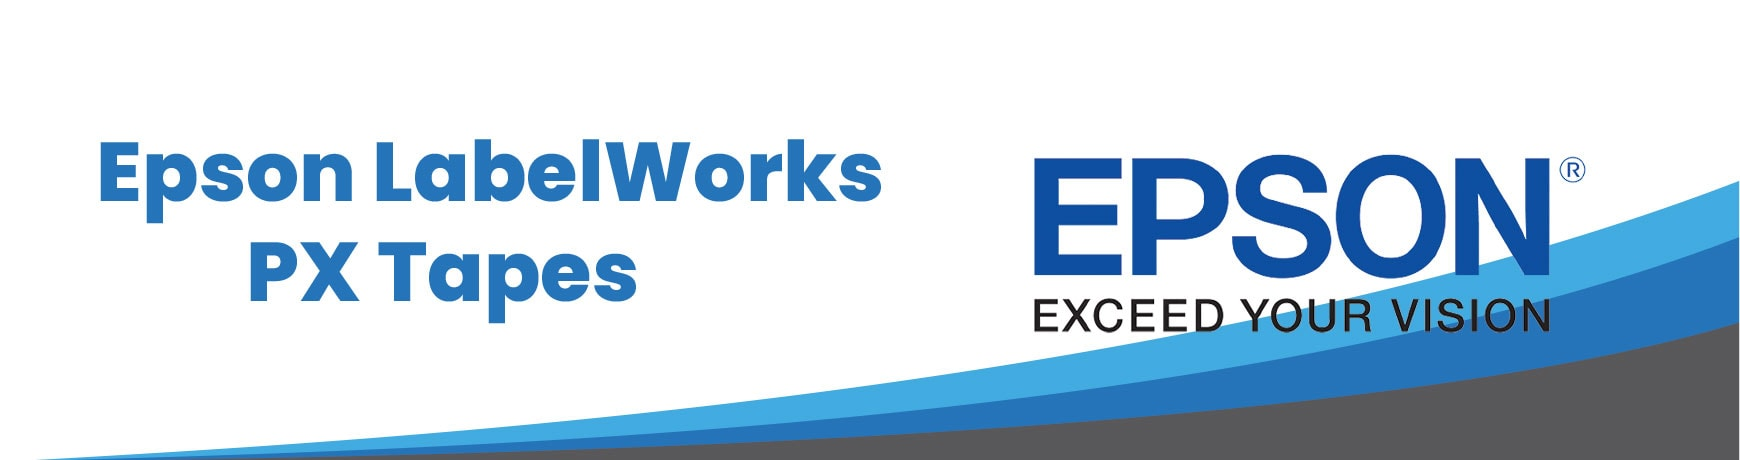 Epson LabelWorks PX Tapes